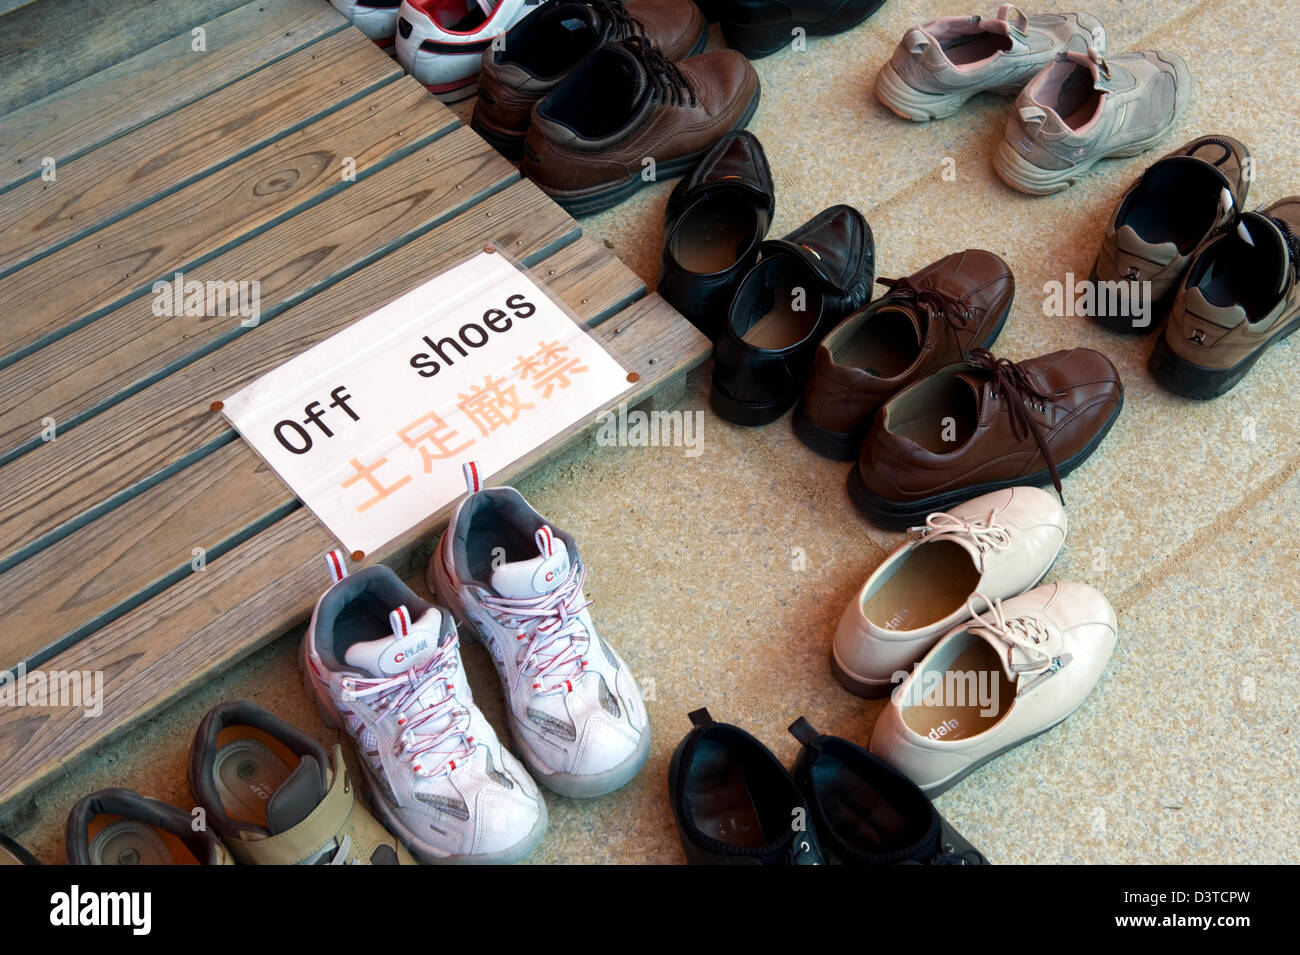 87e4ca7234786 Remove Your Shoes Stock Photos & Remove Your Shoes Stock Images - Alamy